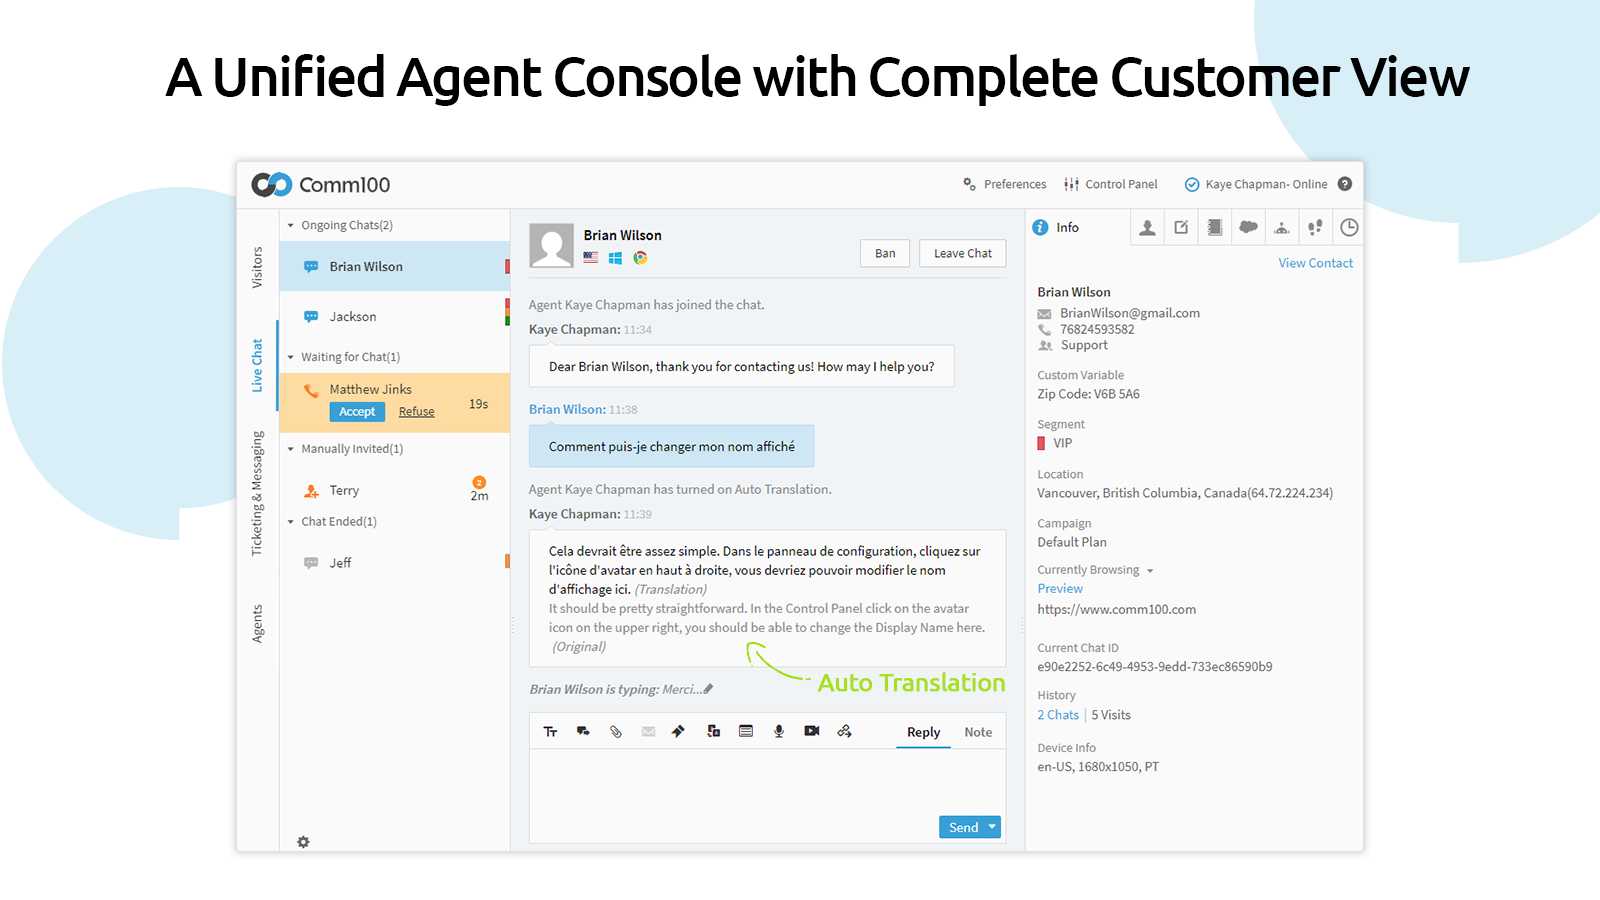 A Unified Agent Console with Complete Customer View